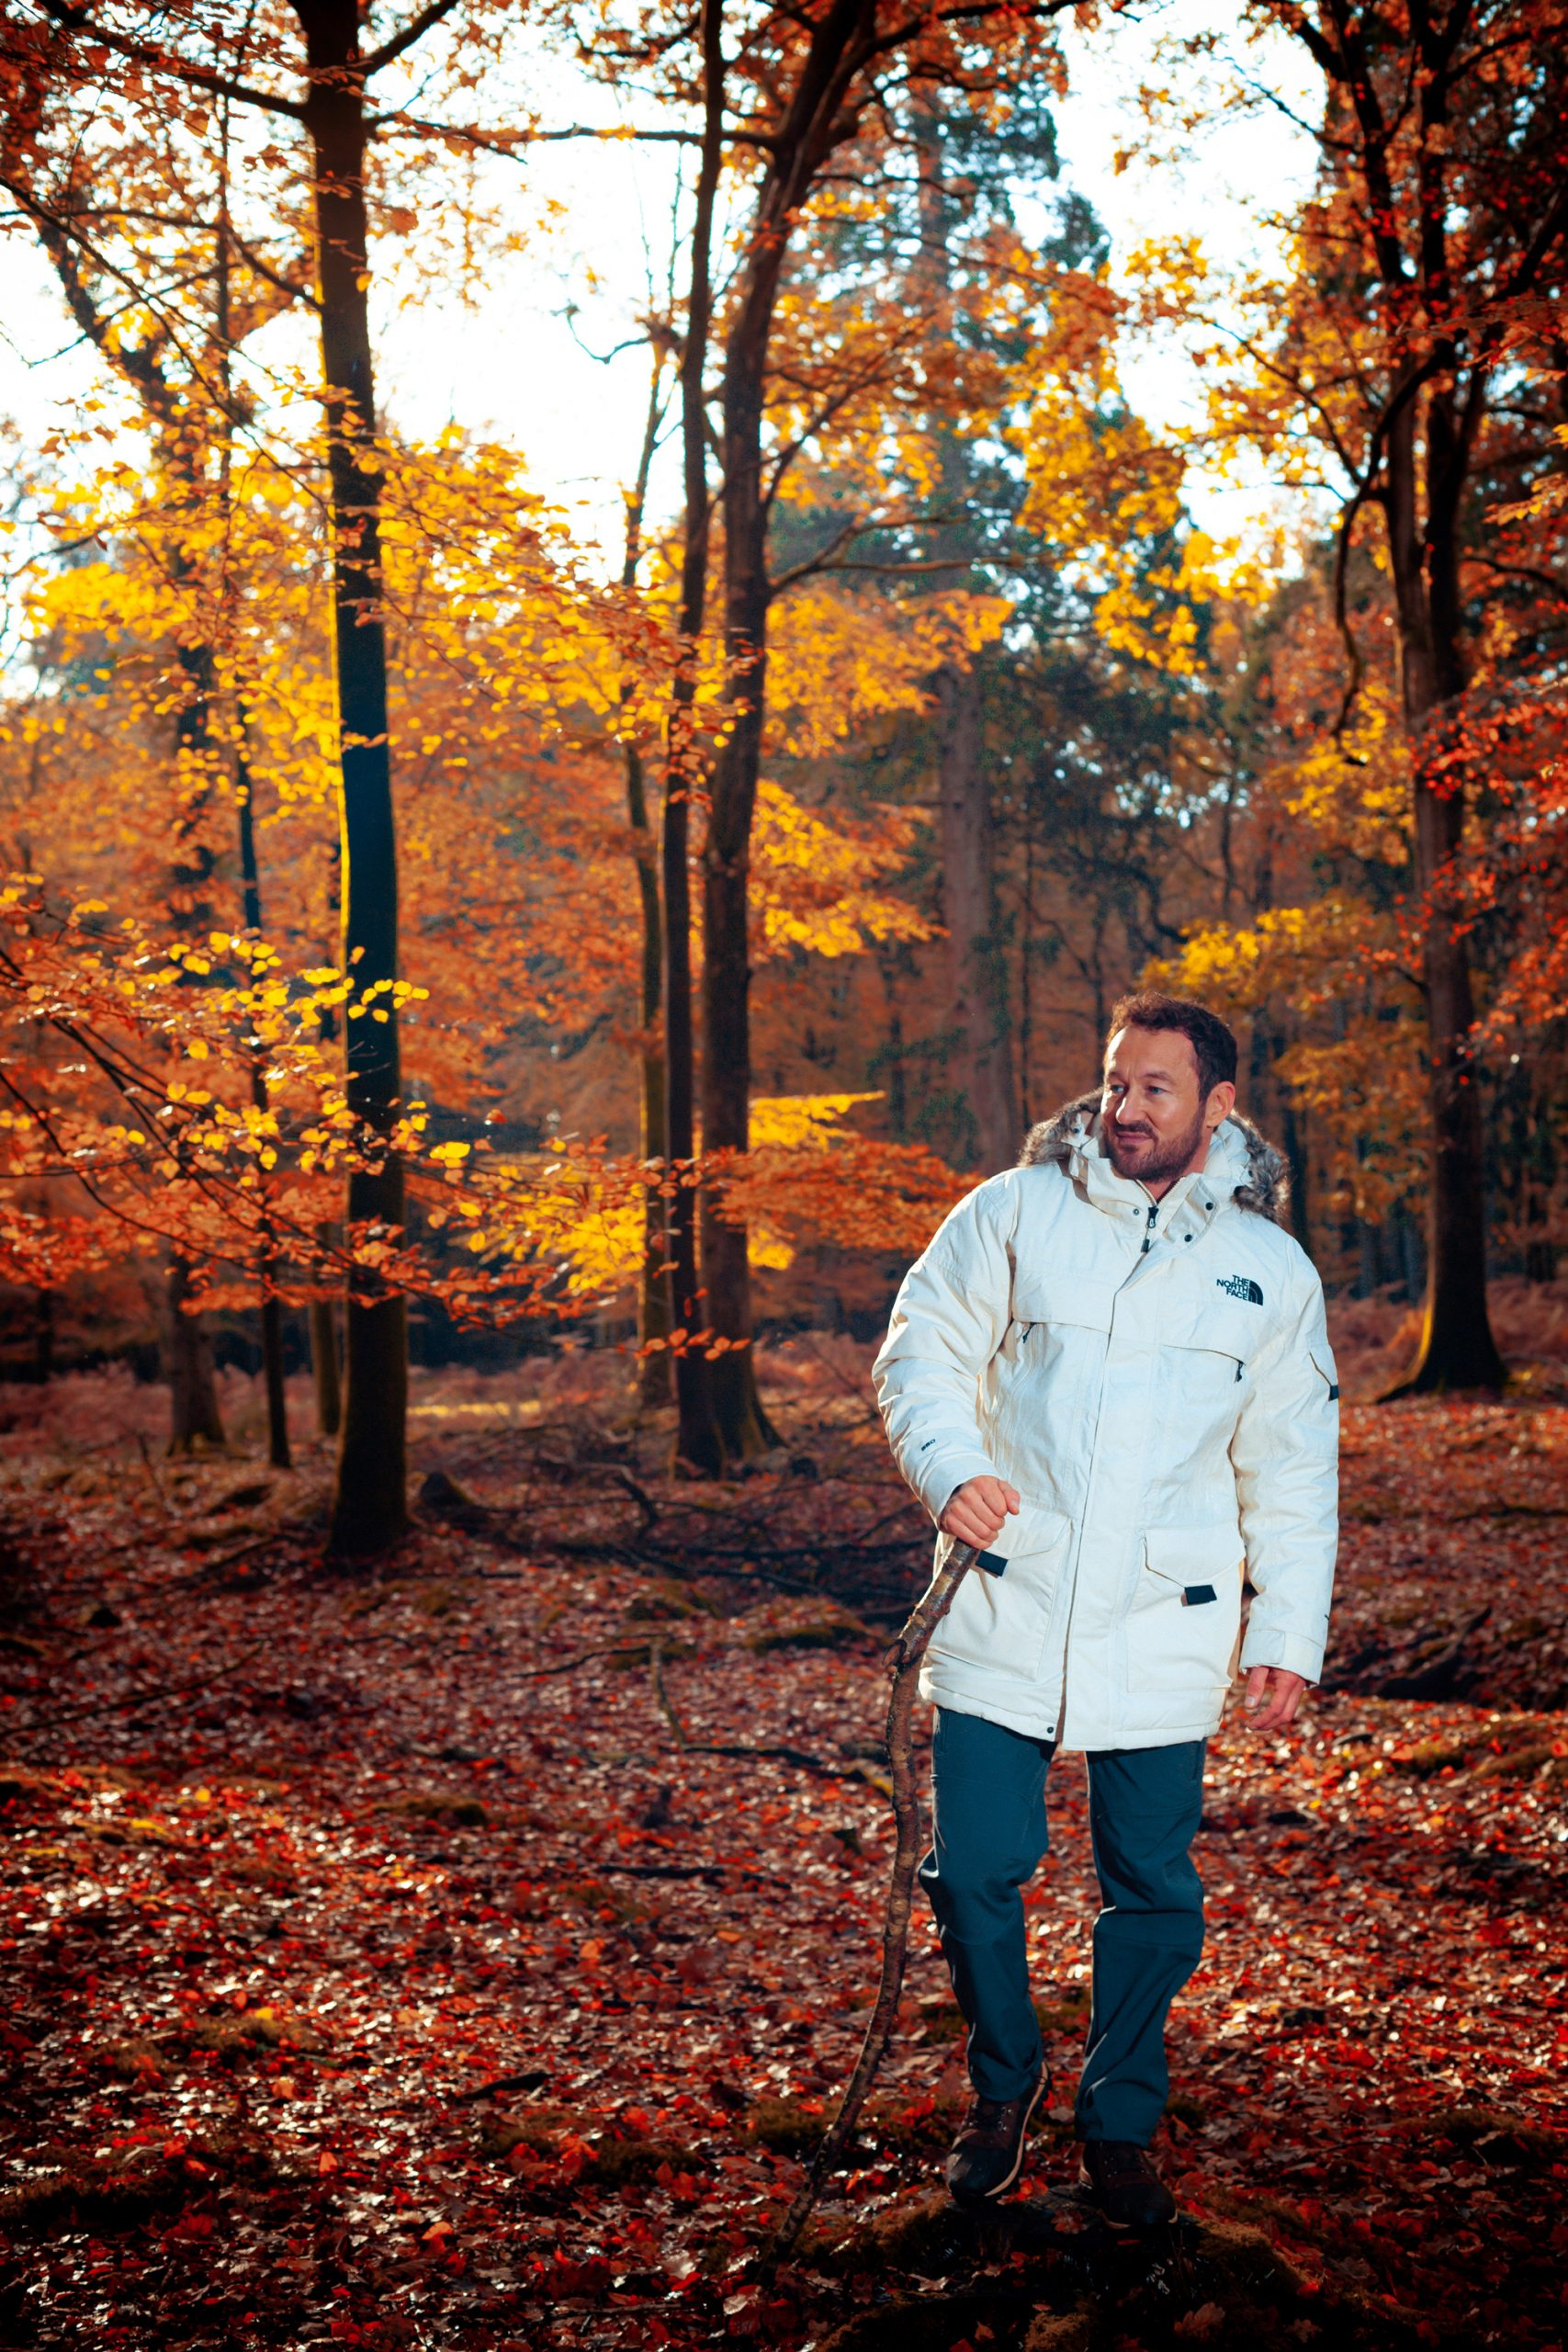 James Rostance walking in the new forest in a white jacket